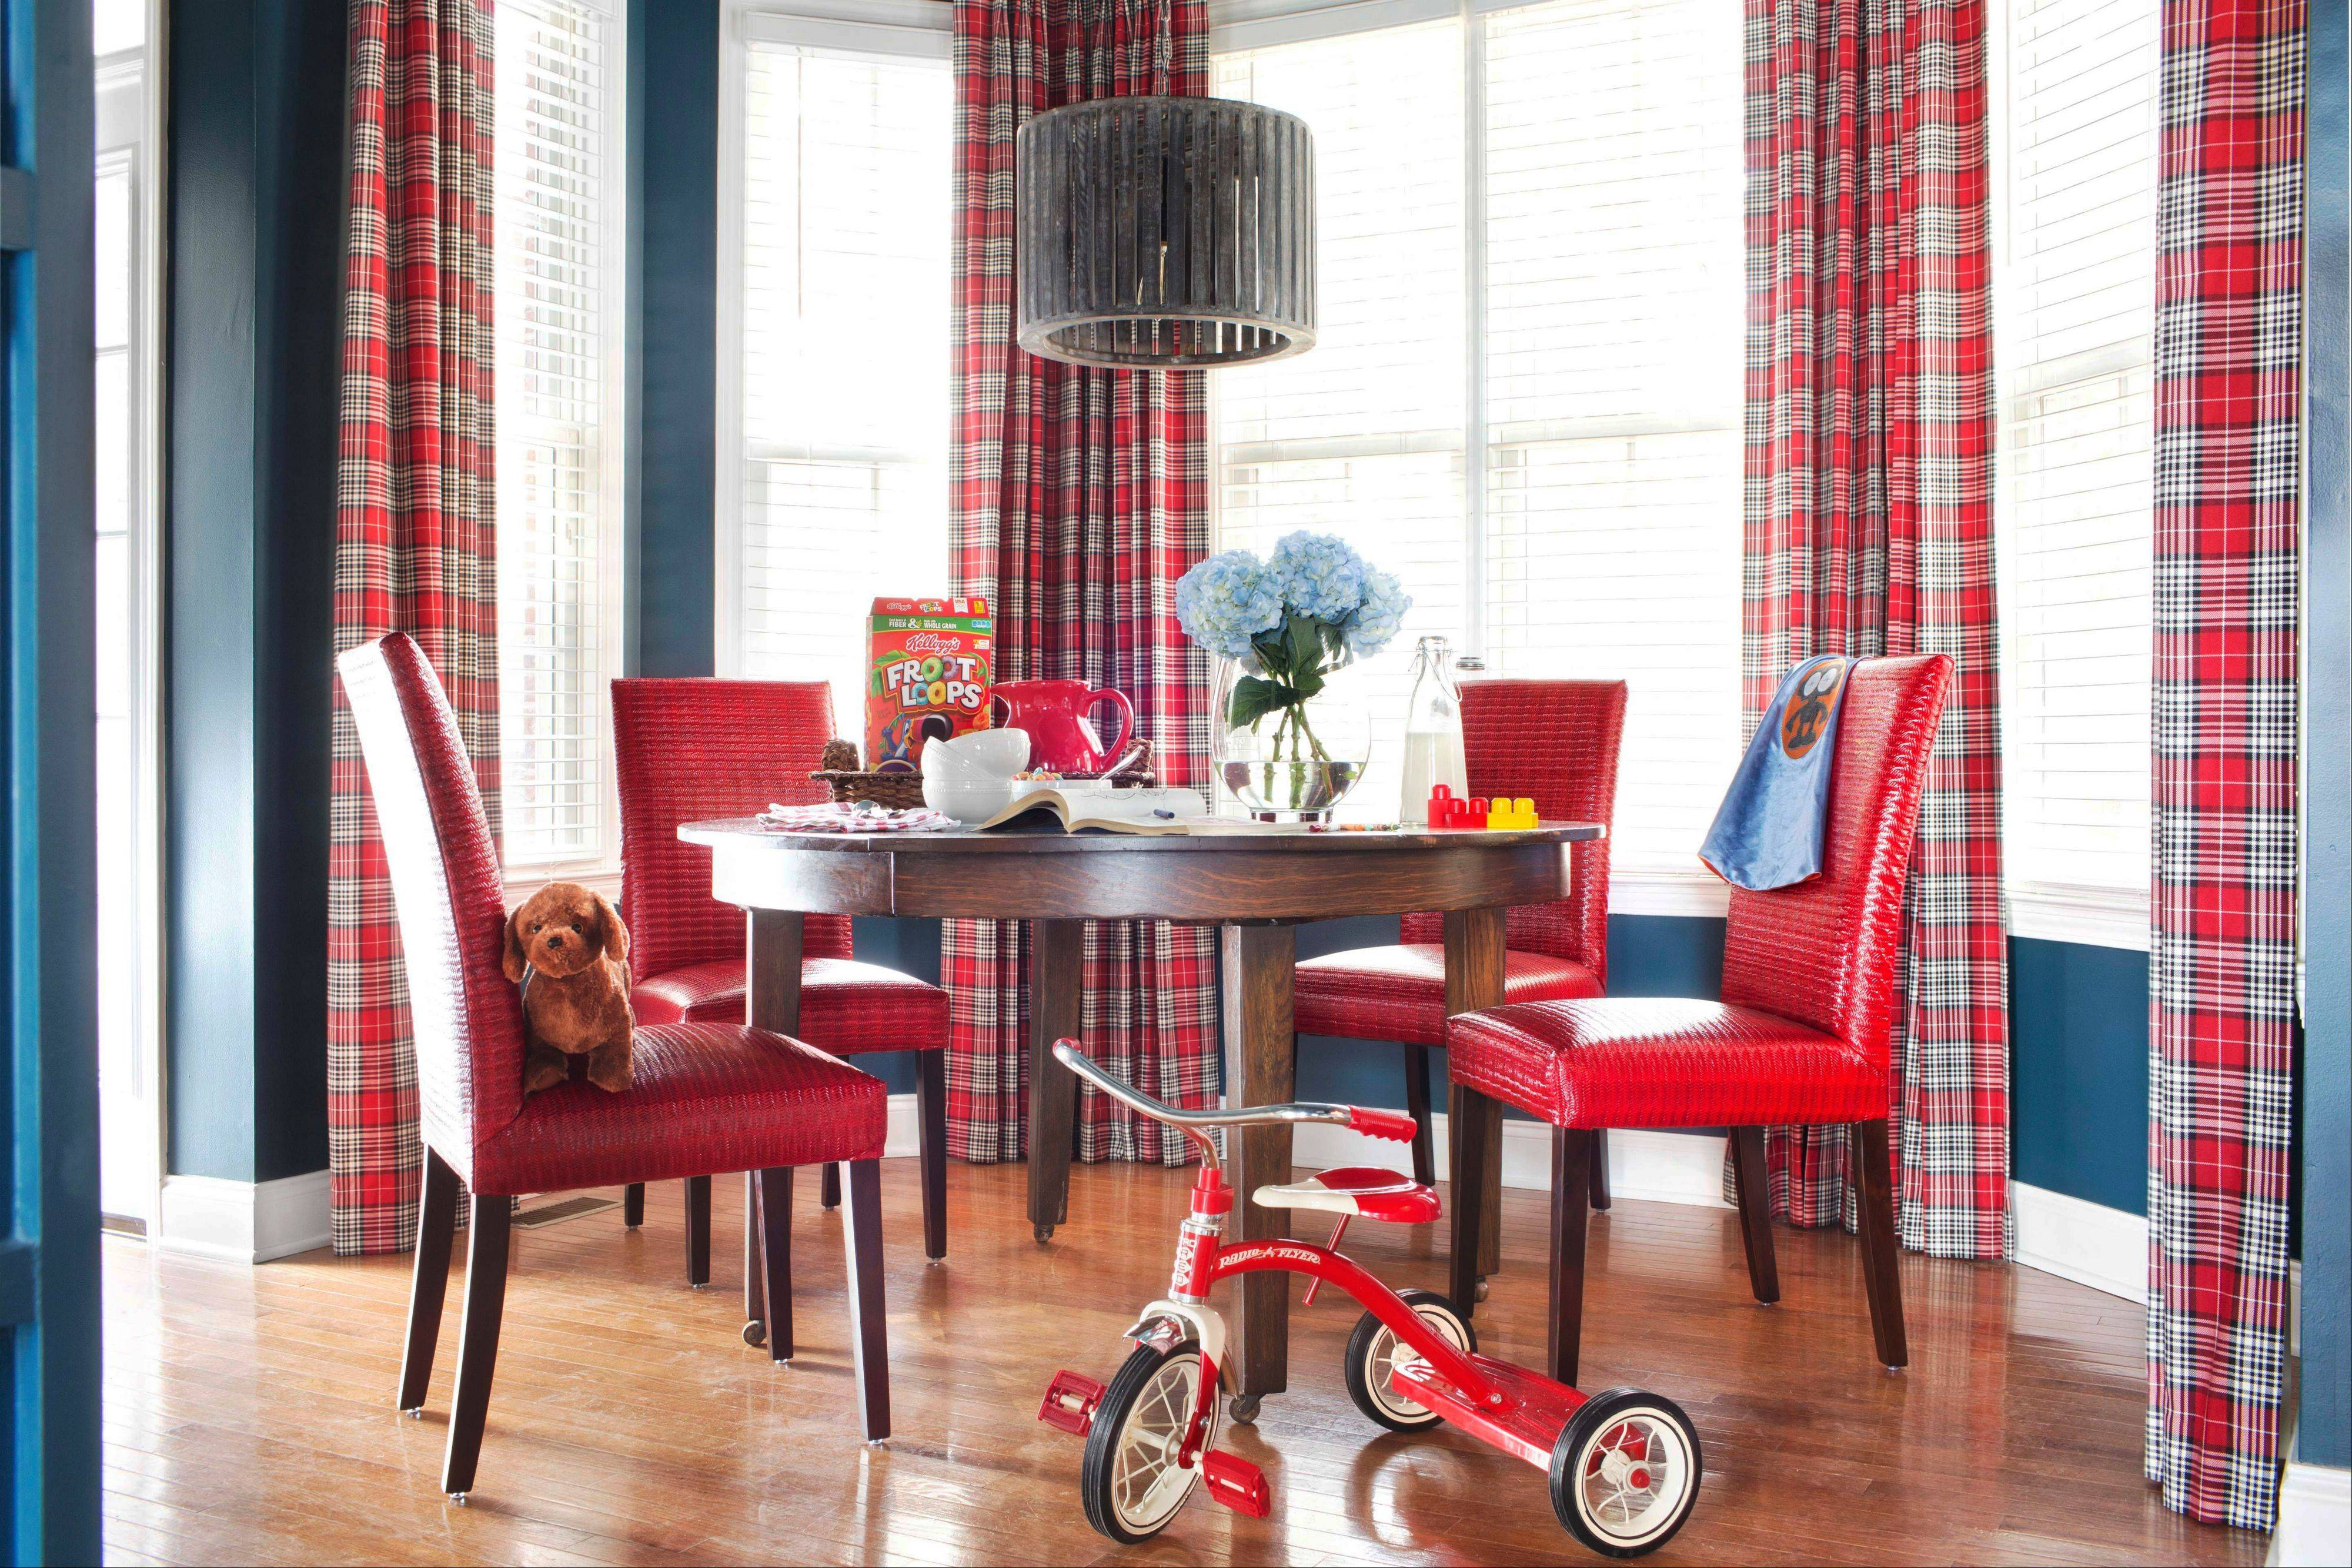 To create a family-friendly breakfast nook, designer Brian Patrick Flynn mixes classic patterns such as plaid, youthful colors such as navy blue and red, commercial-grade fabrics like automotive vinyl and tables with rounded corners to avoid any mishaps from roughhousing.